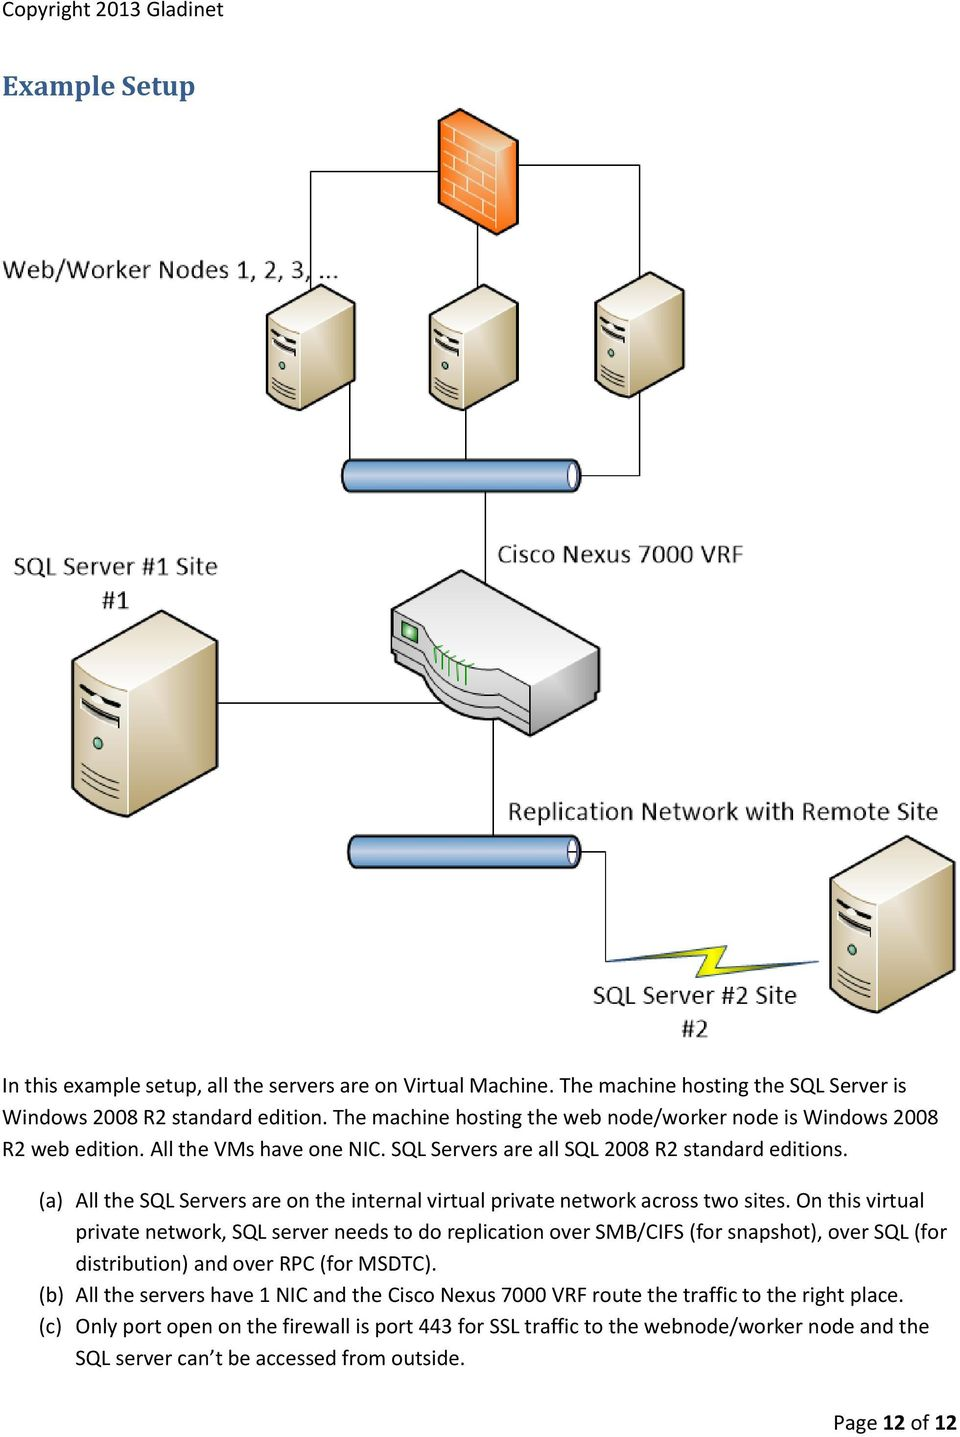 (a) All the SQL Servers are on the internal virtual private network across two sites.